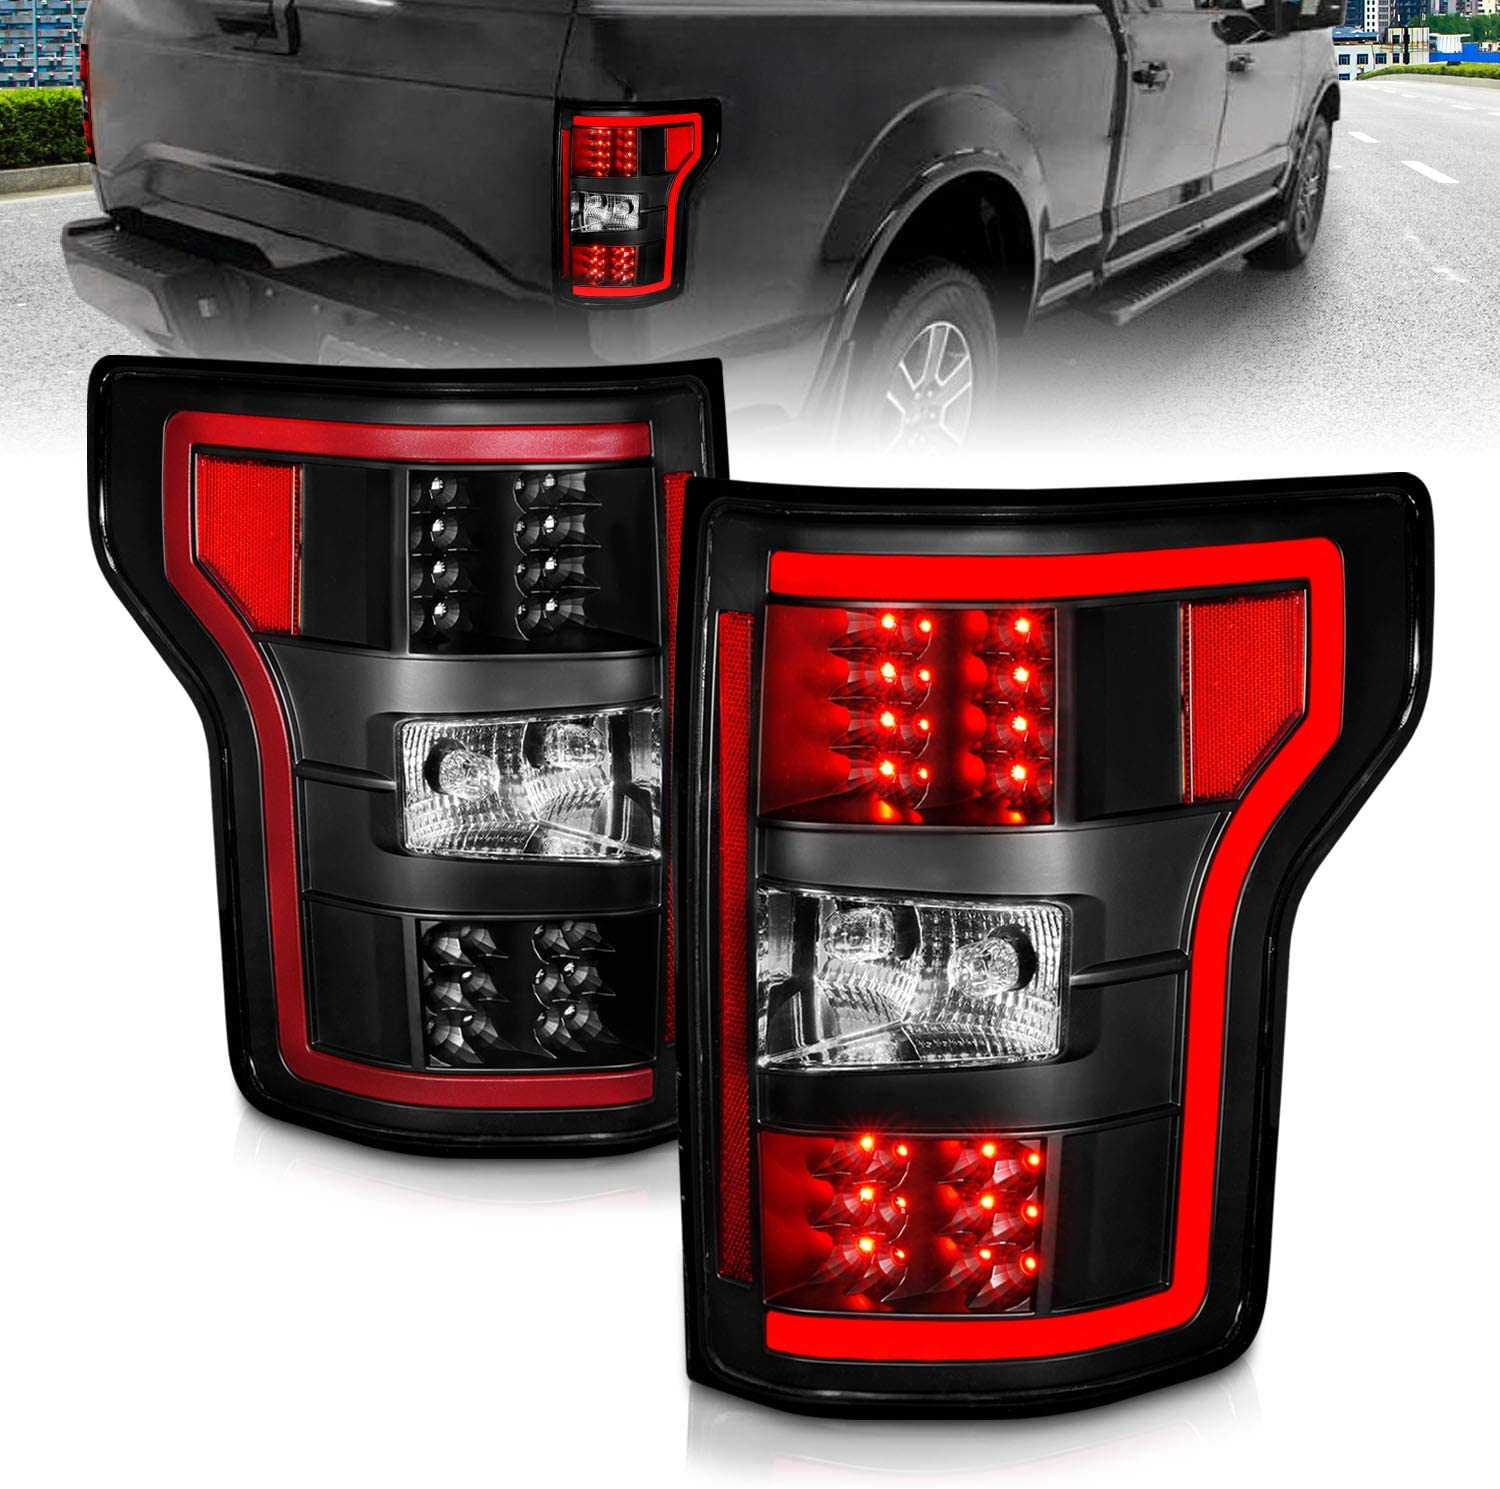 AmeriLite for 2018-2020 Ford F150 LED Light Limited time Max 90% OFF free shipping Tube Bar Replacement